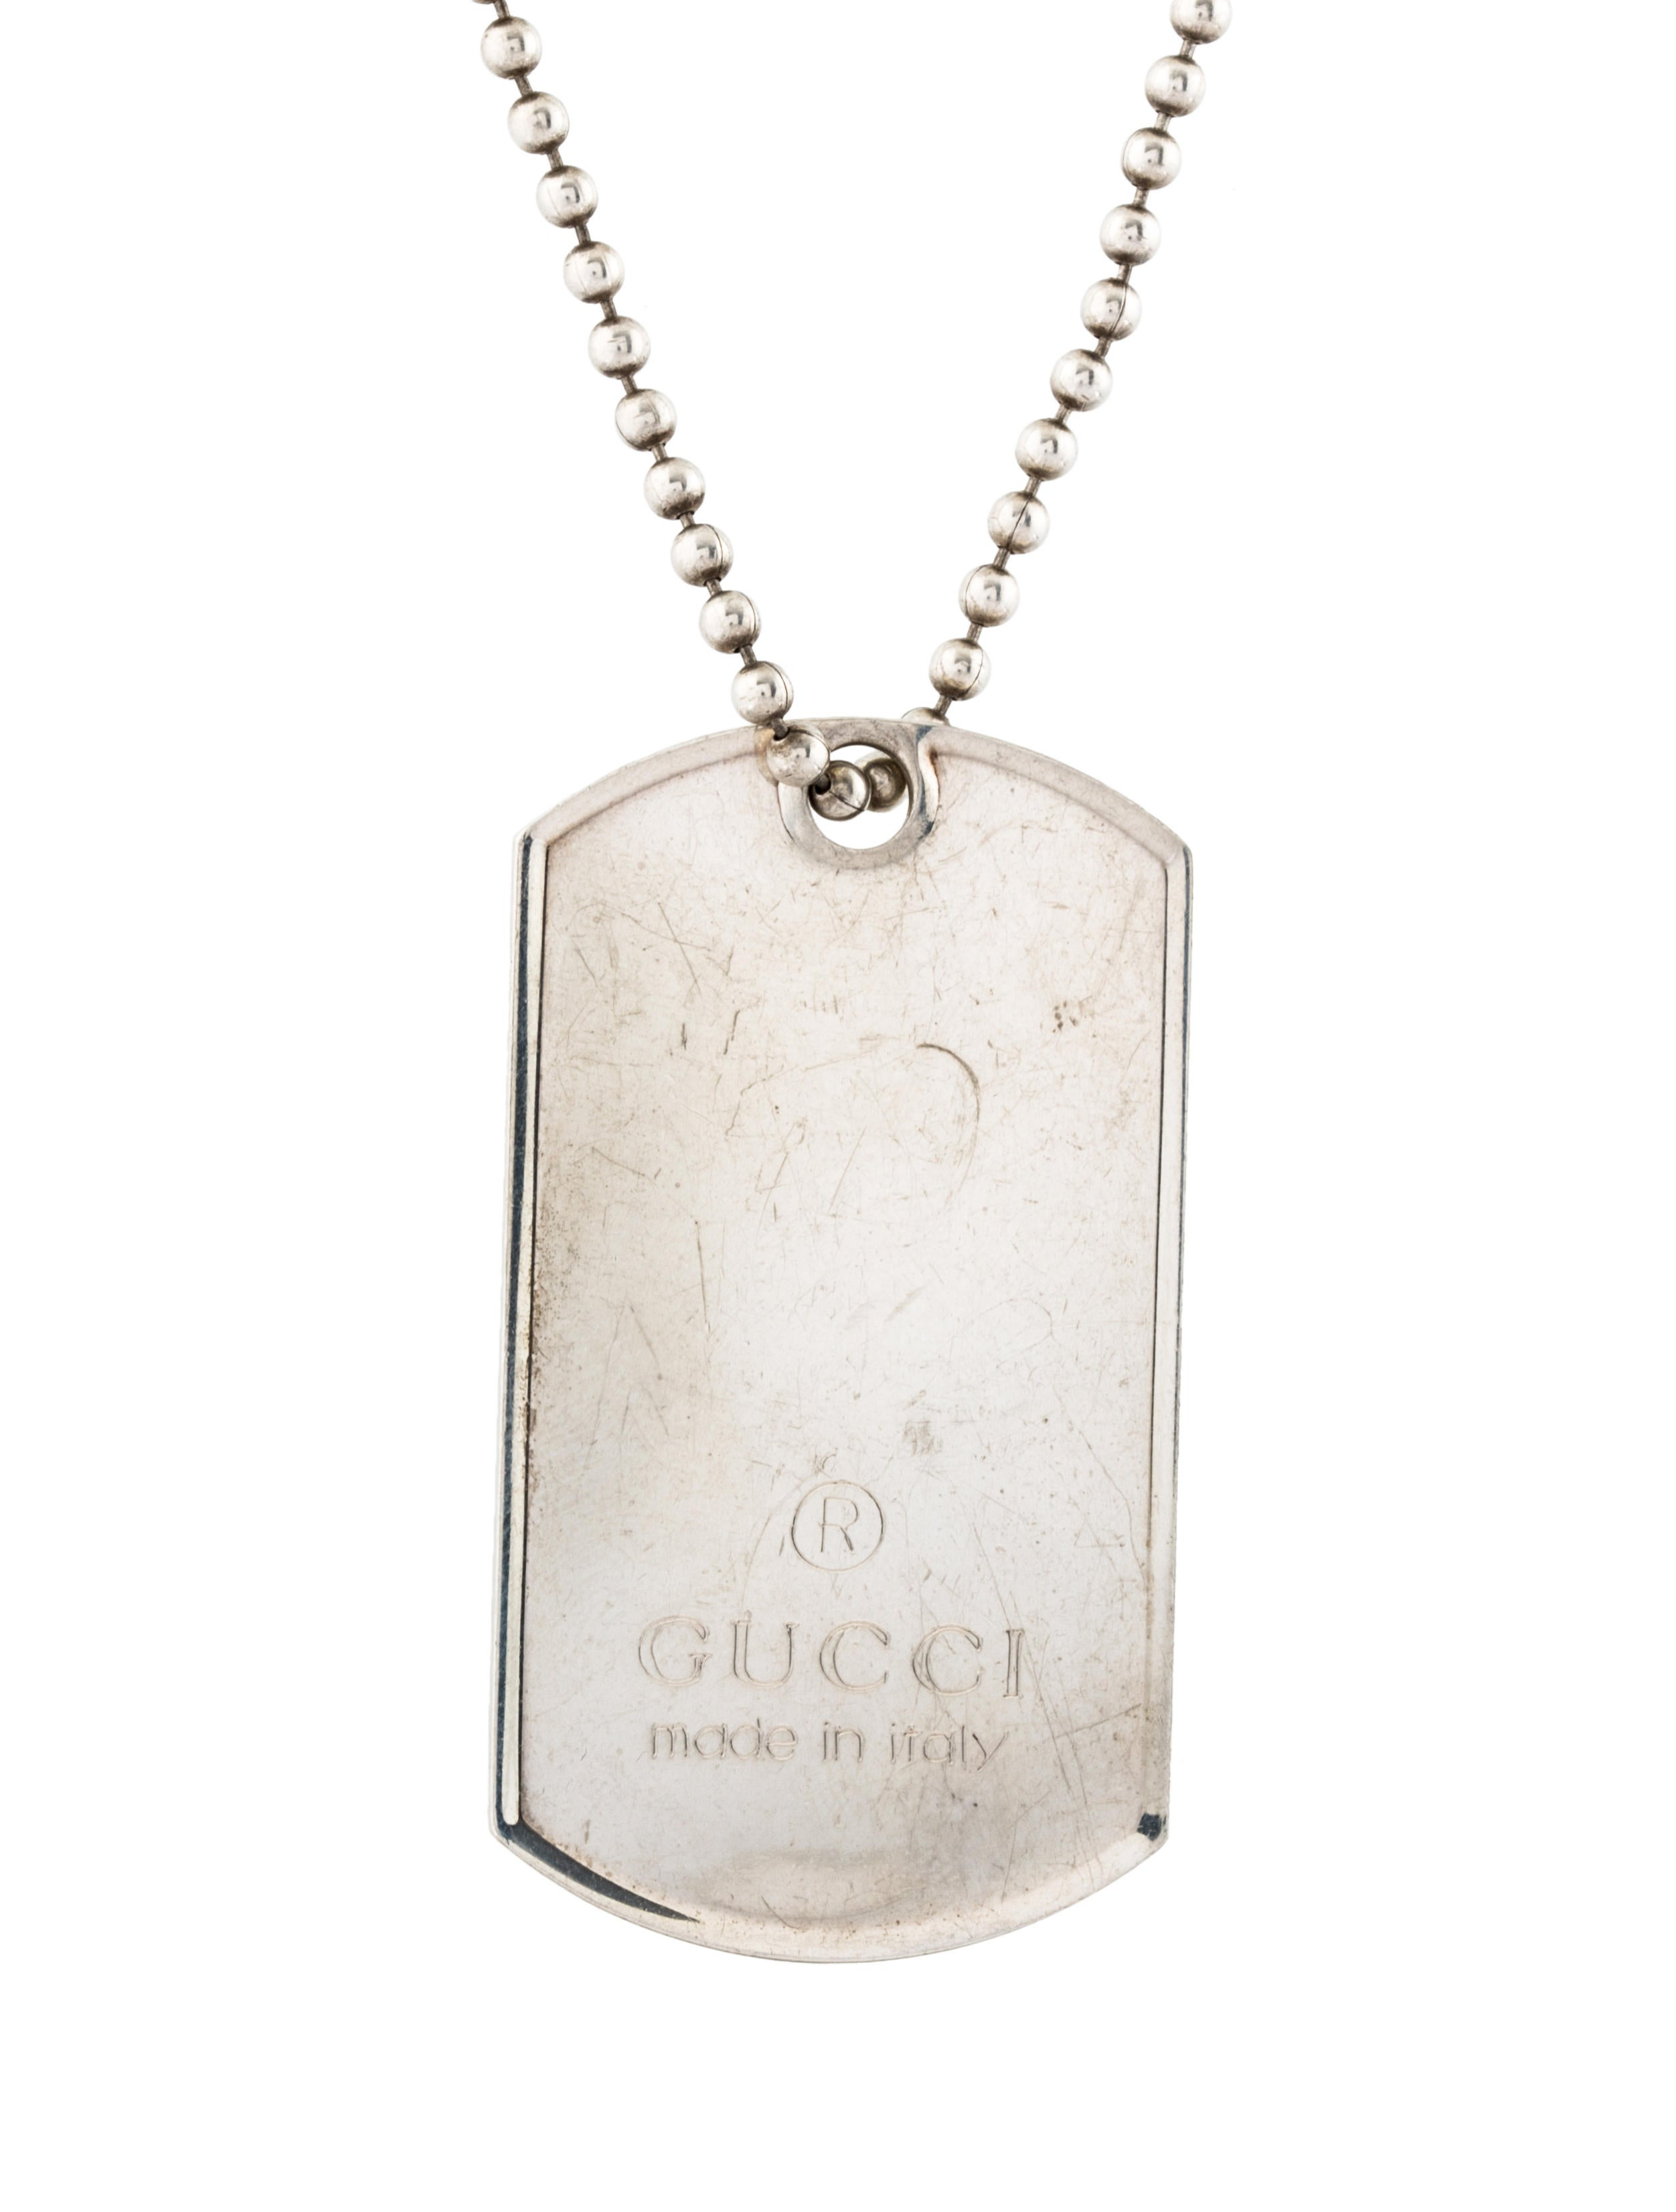 12045b241 Gucci Dog Tag Pendant Necklace - Necklaces - GUC250687 | The RealReal